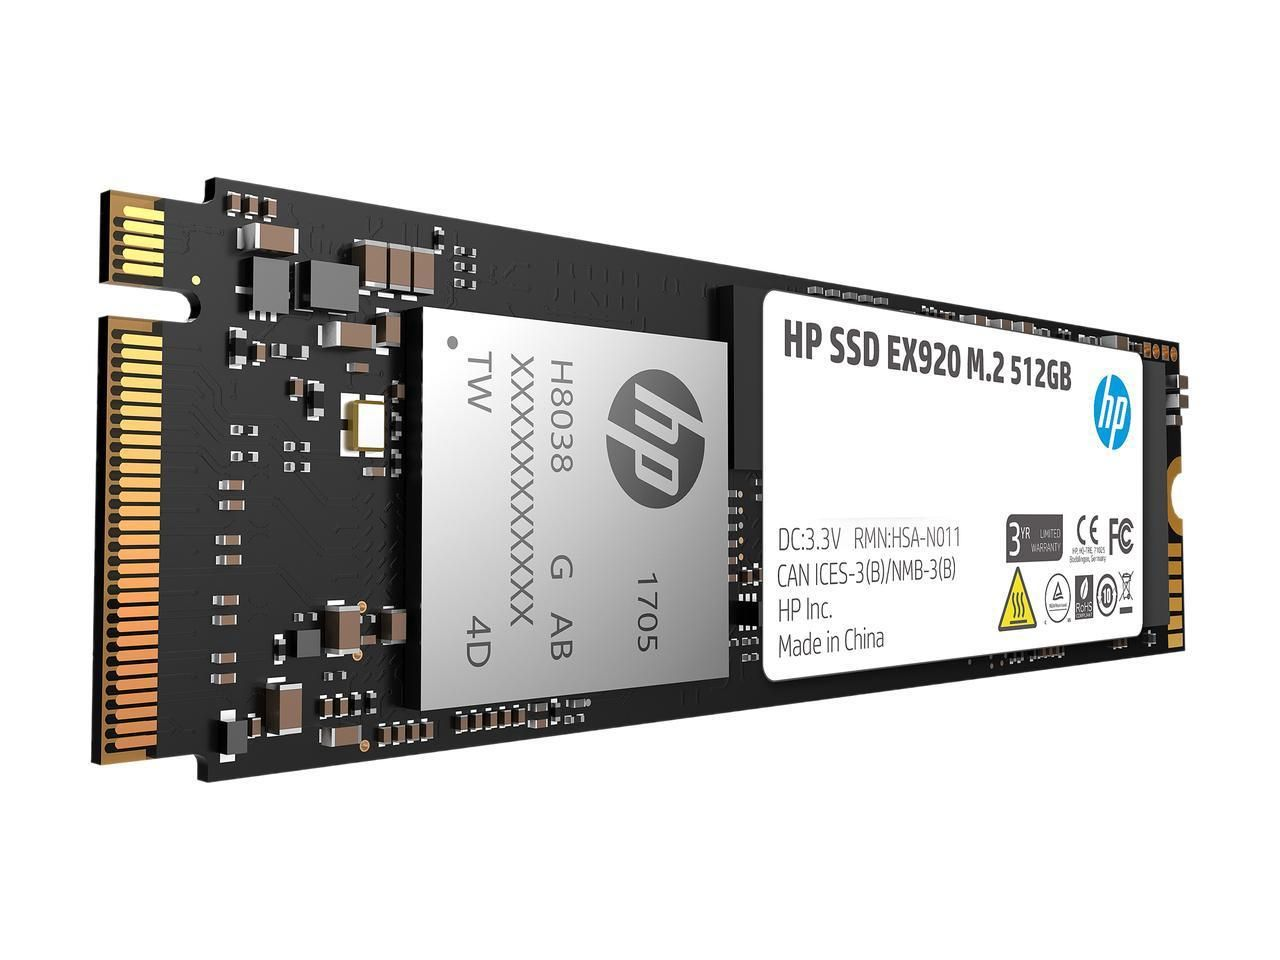 Hp Ex920 M2 512gb Pcie 3 0 X4 Nvme 3d Tlc Nand Internal Solid State Drive  (ssd 2yy46aa#abc